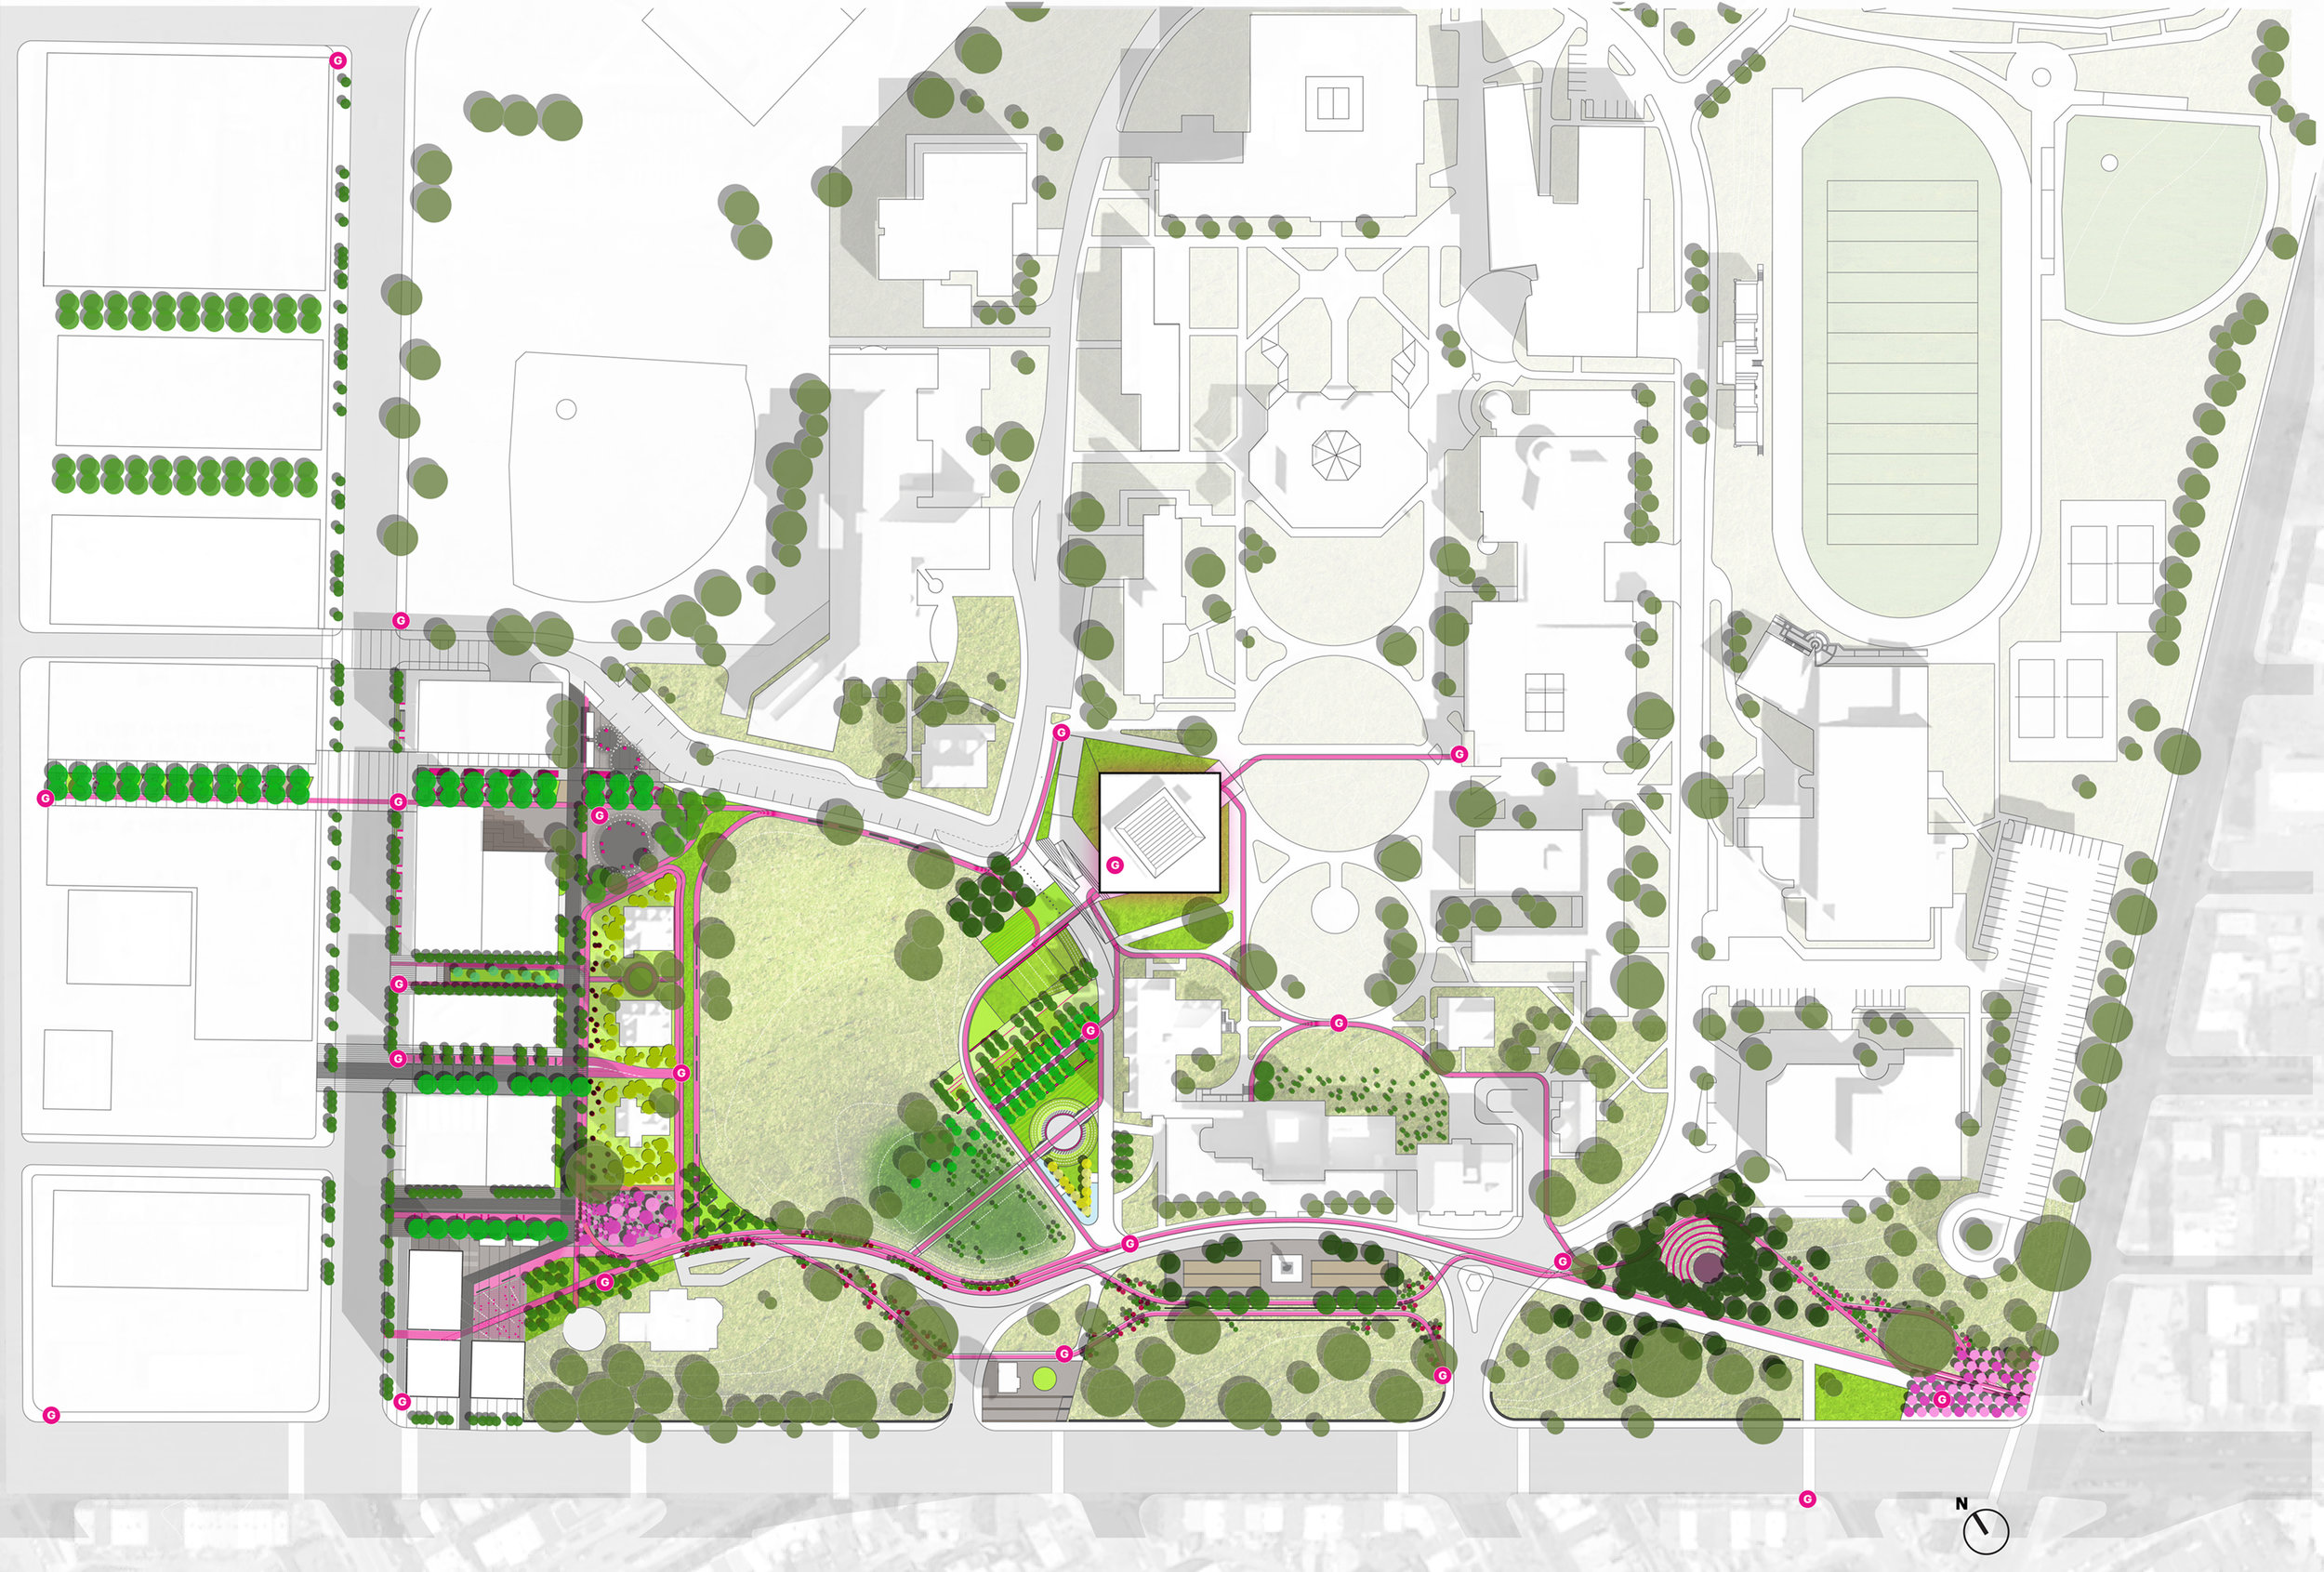 GALLAUDET SITE PLAN